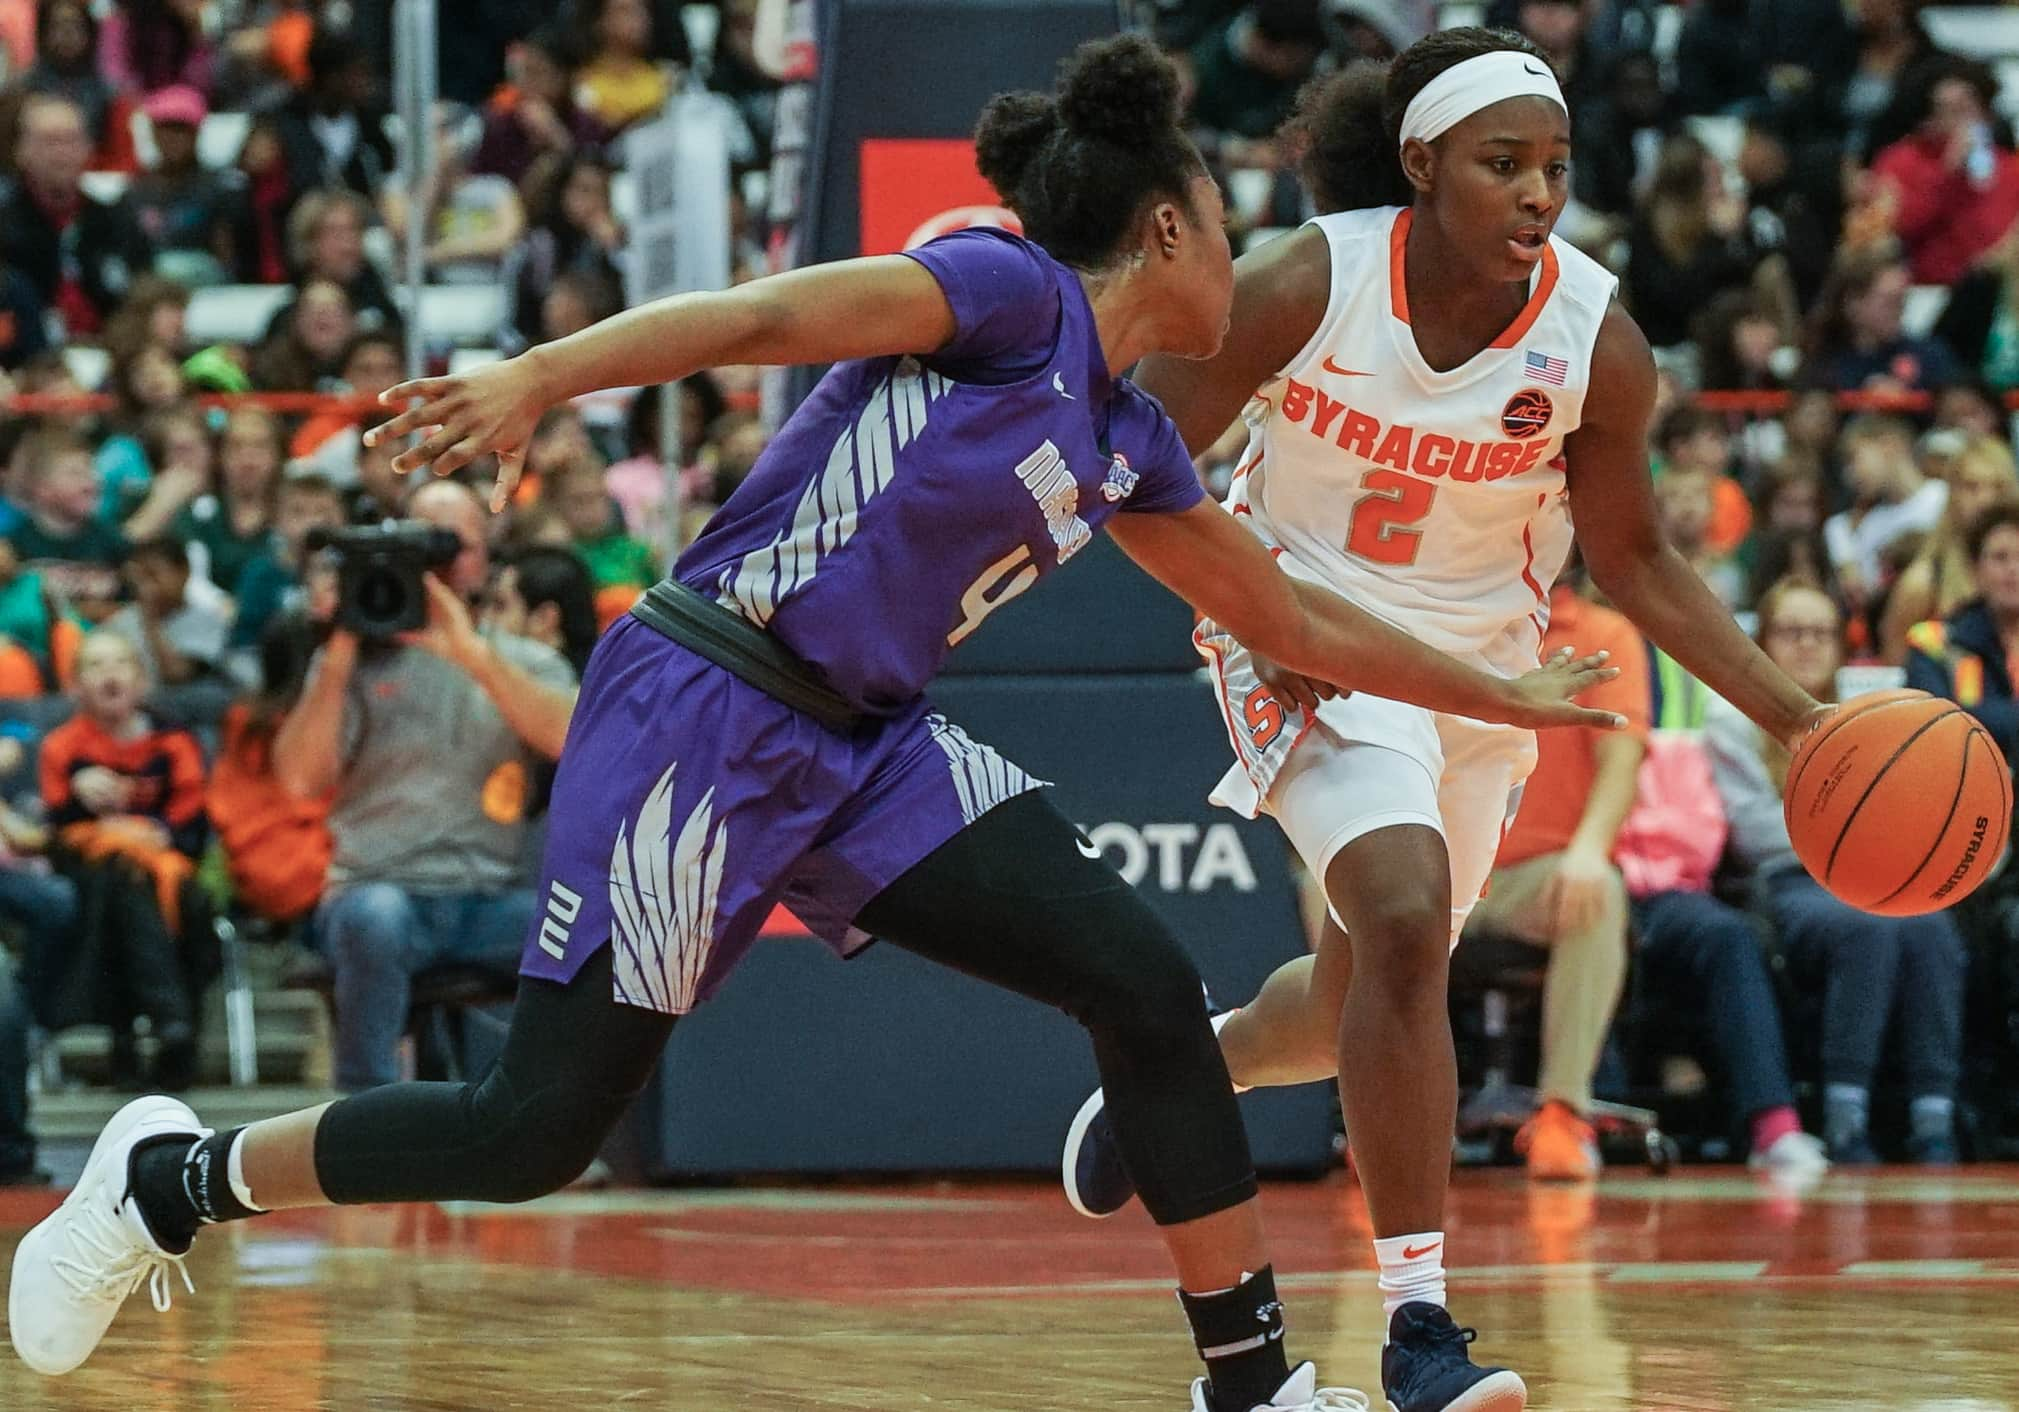 Drummond Scores Game High 19 Points In Orange Victory Over Niagara